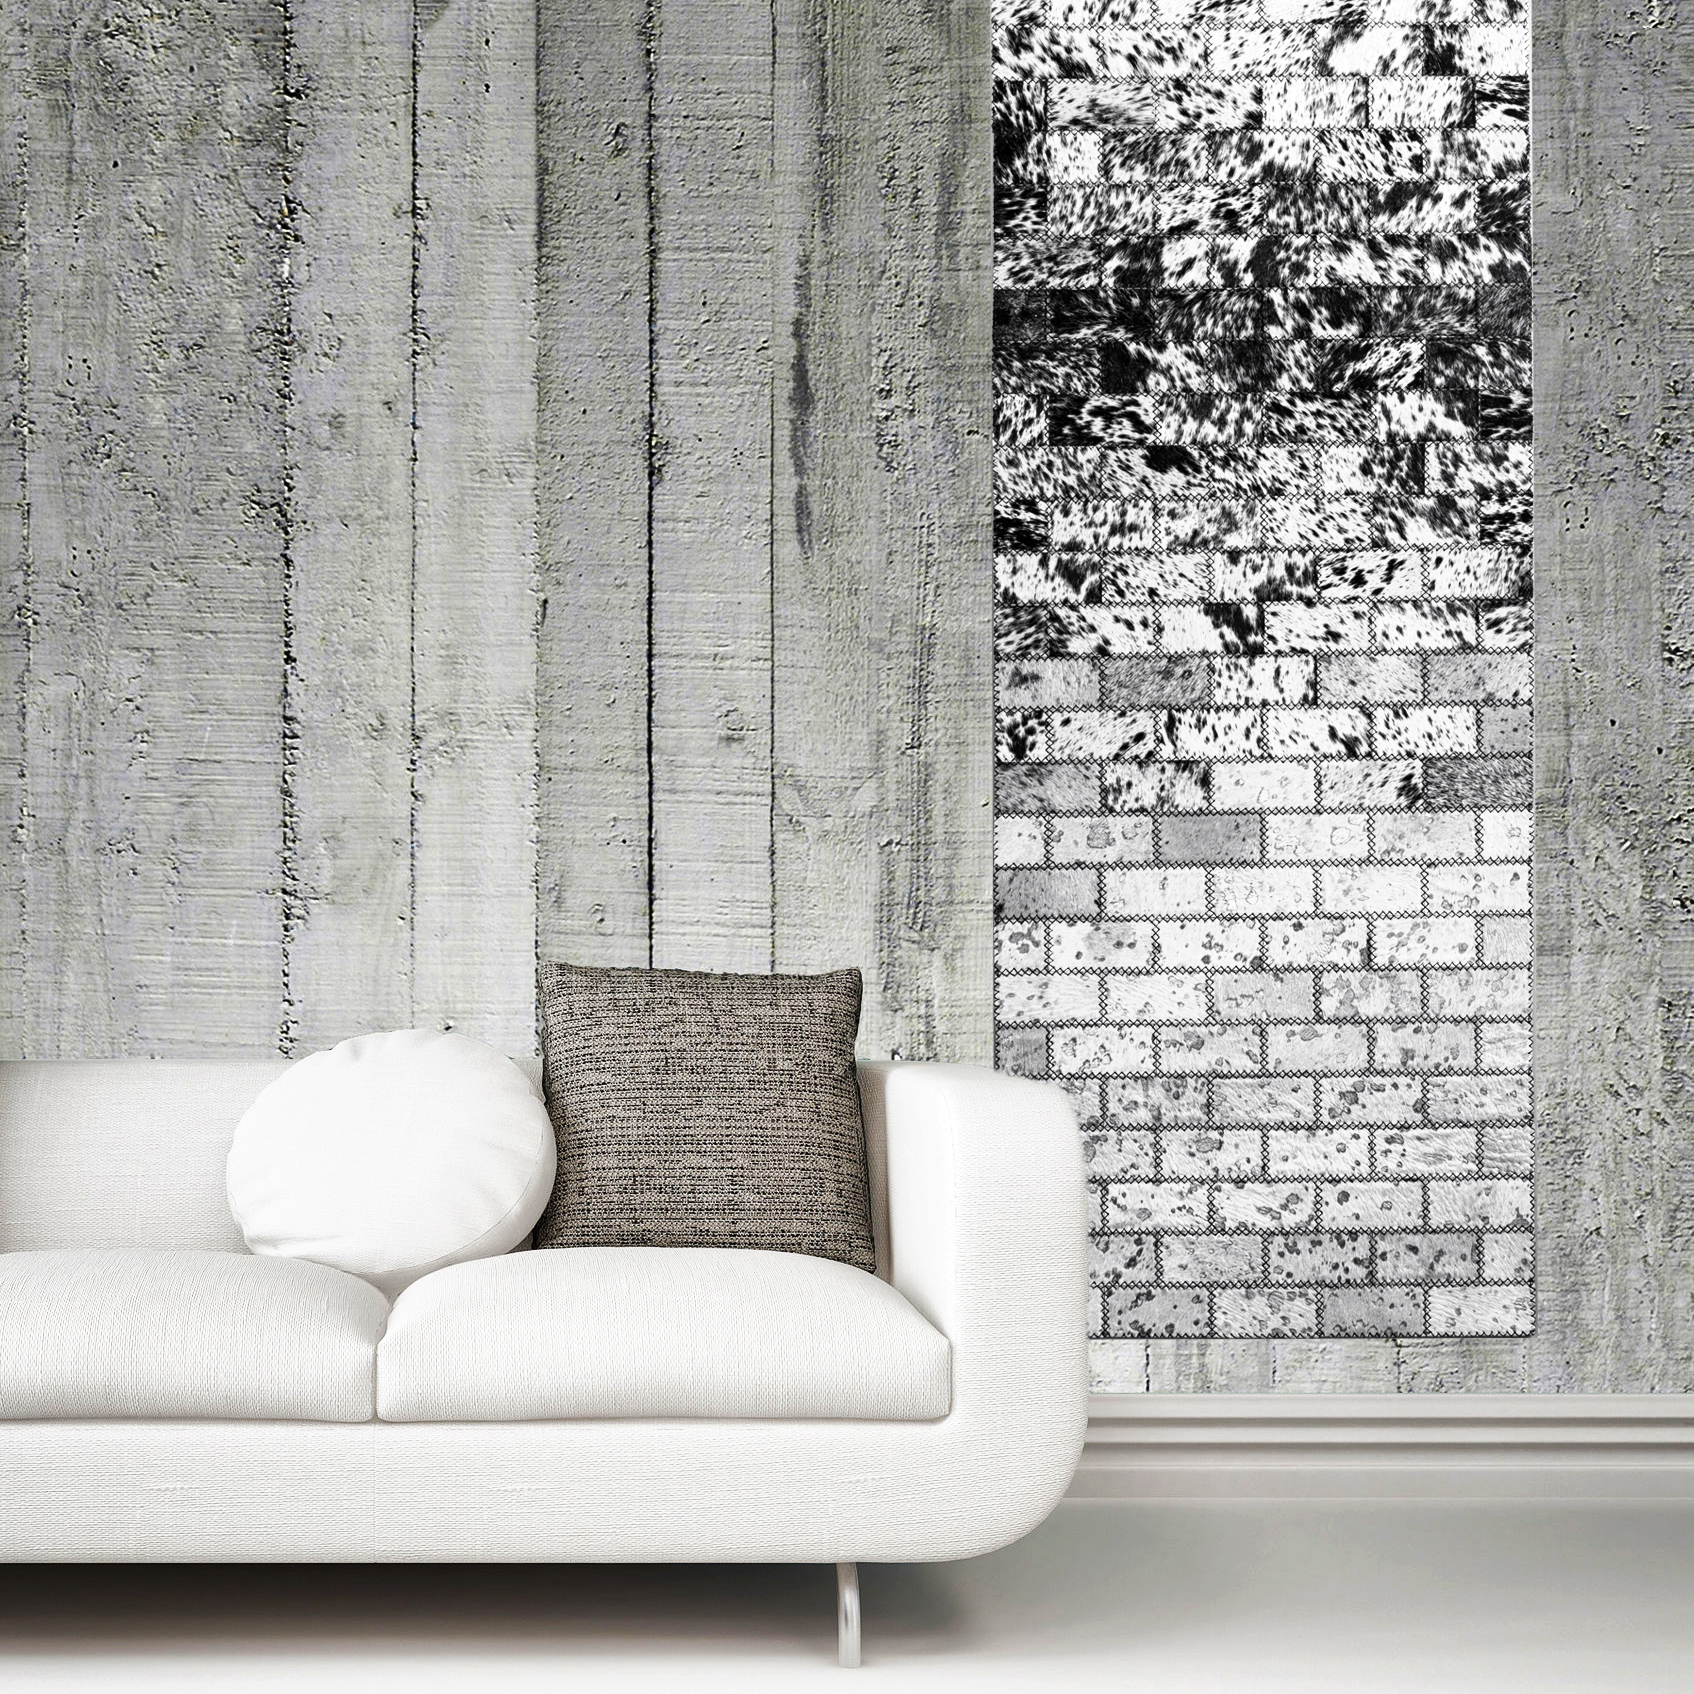 Greyscale image of an upholstered white sofa against a concrete wall over a plain white floor with skirting board